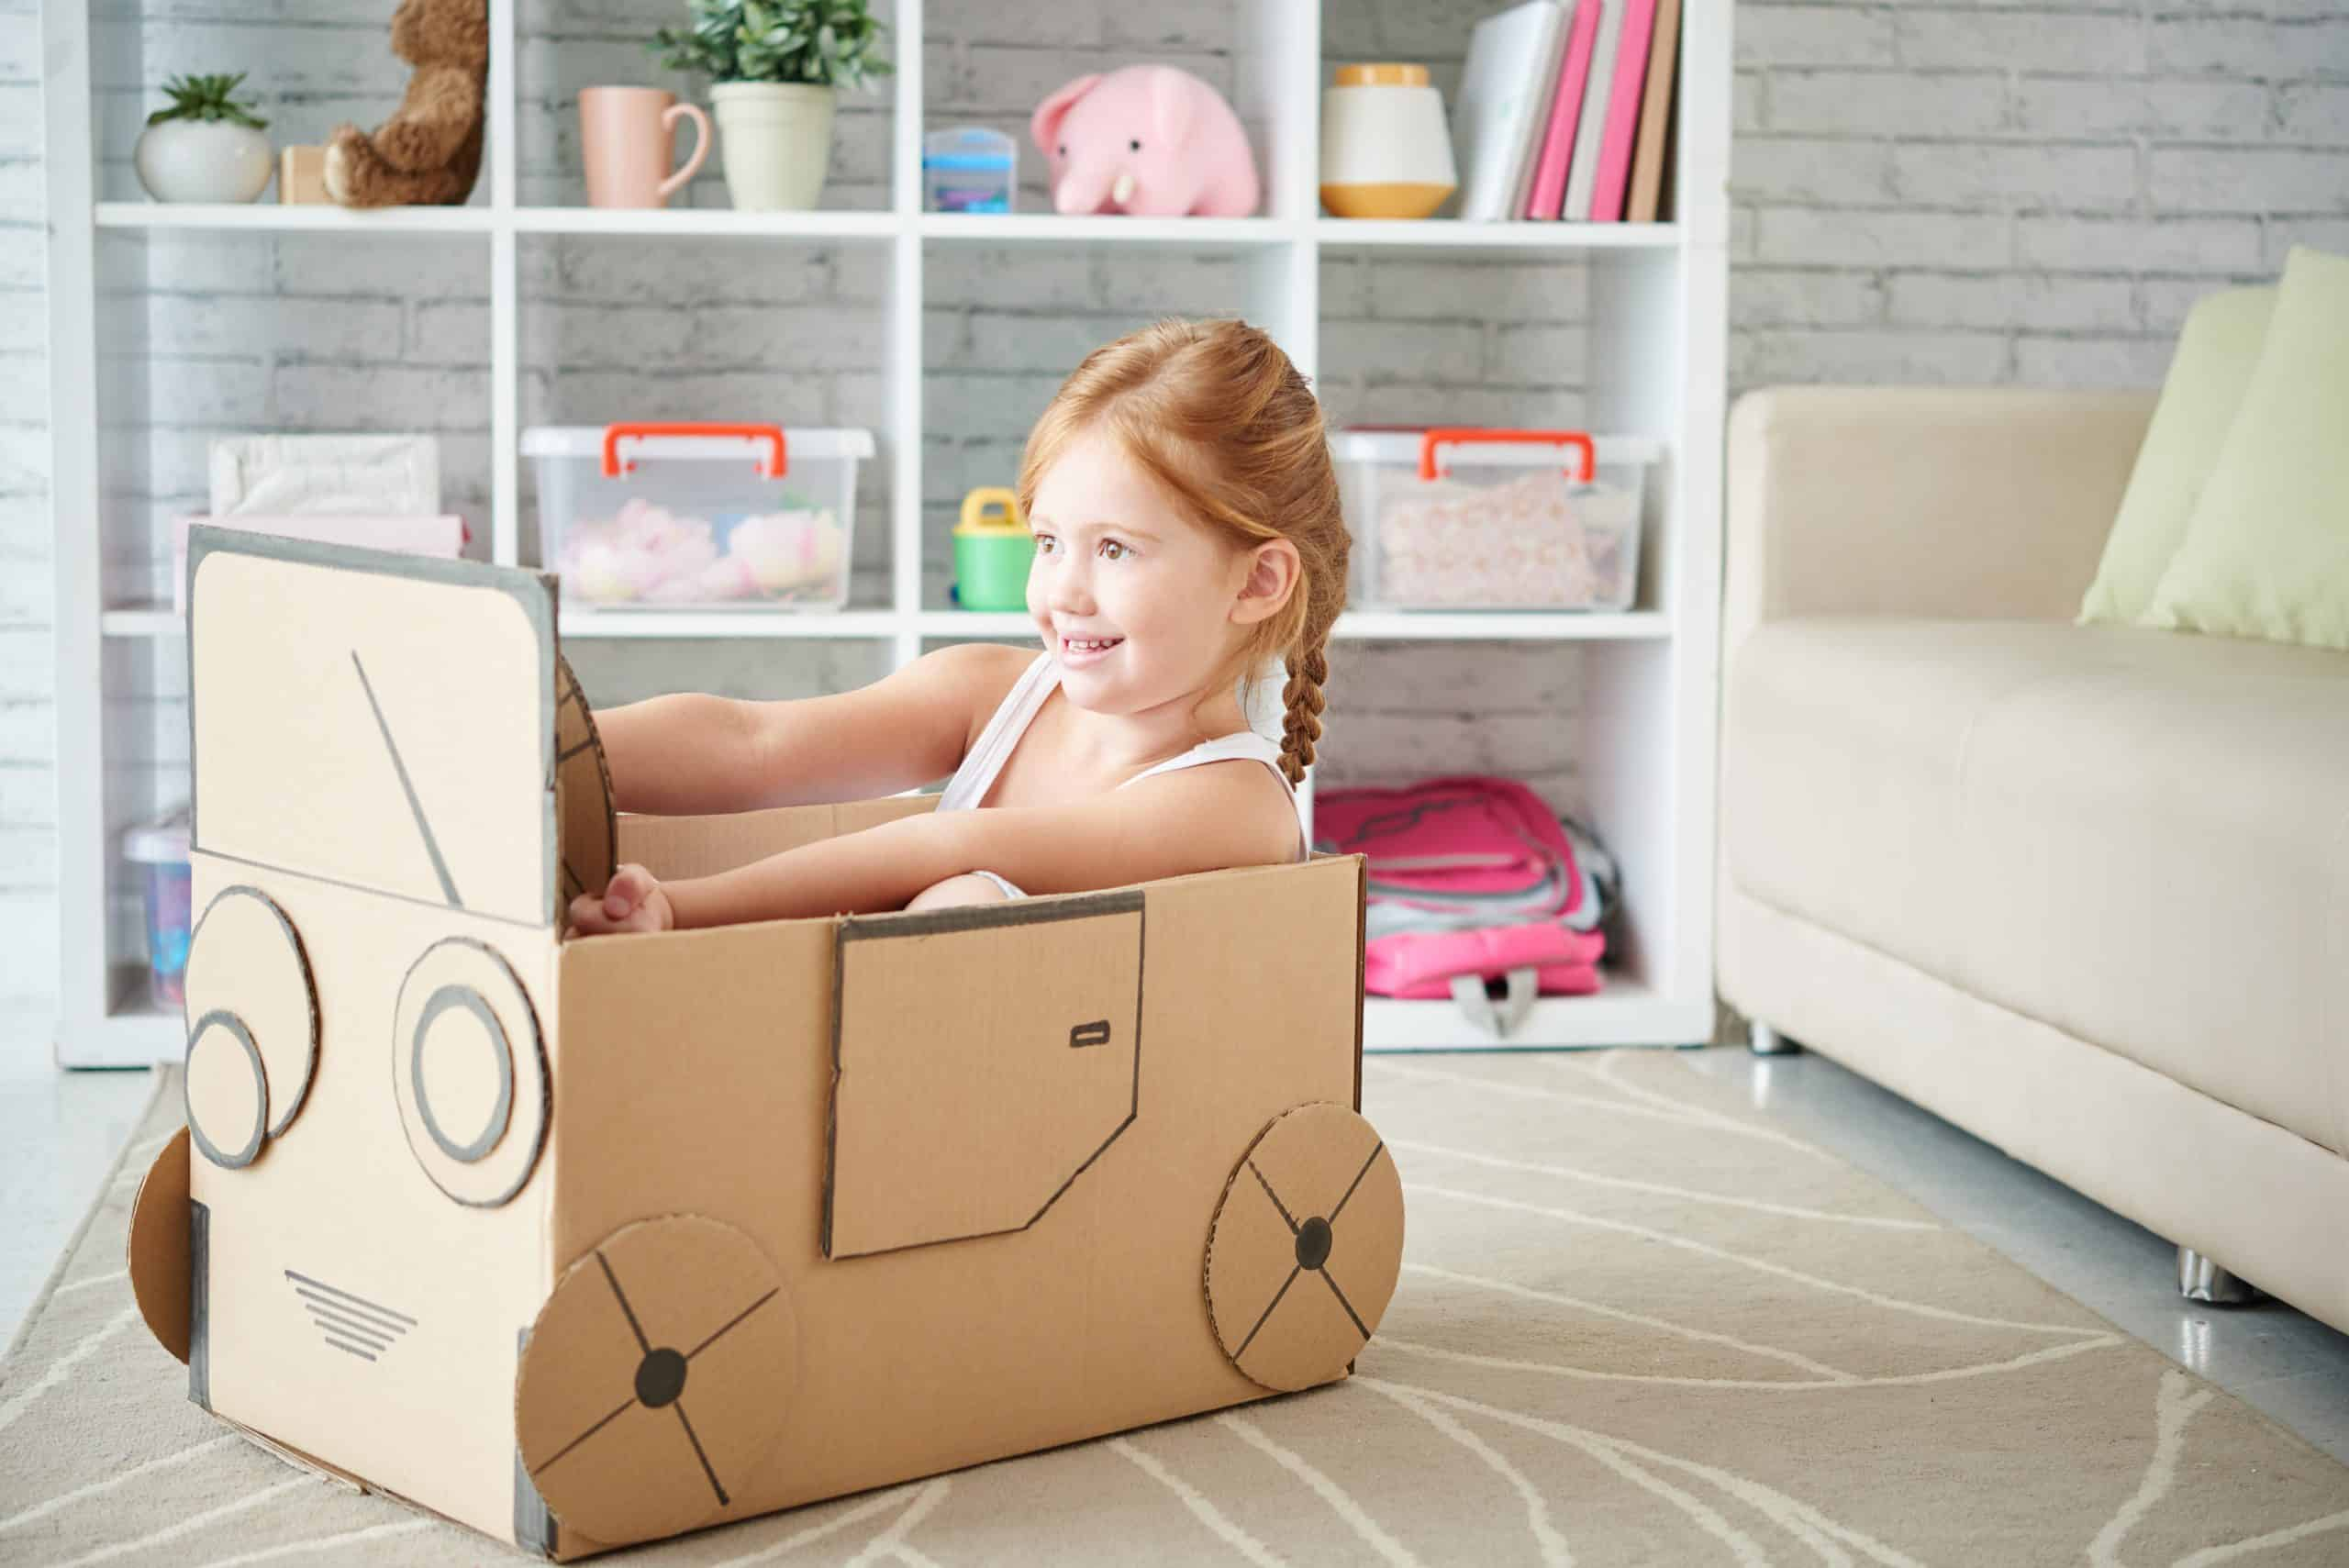 Young girl sits in the cardboard box car she made at home, pretending to drive and smiling